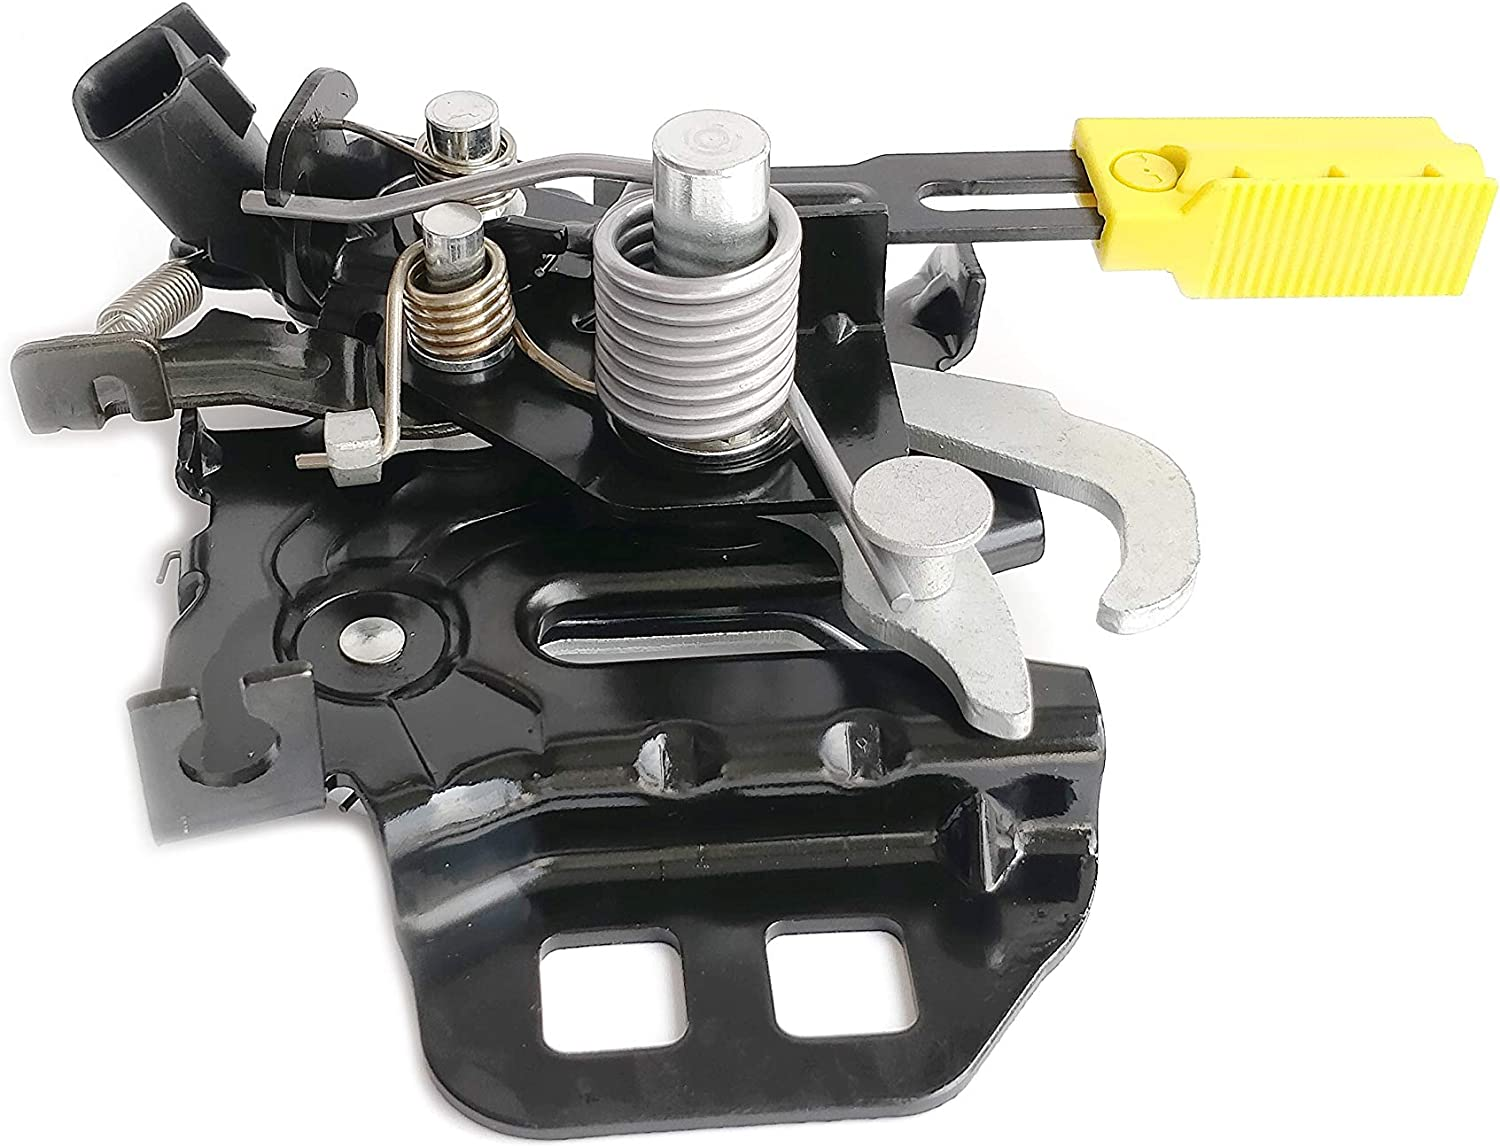 Hood-Lock Latch For 2015-2018 Ford Edge 2.0T 2.7L//3.5L V6 FT4Z16700A